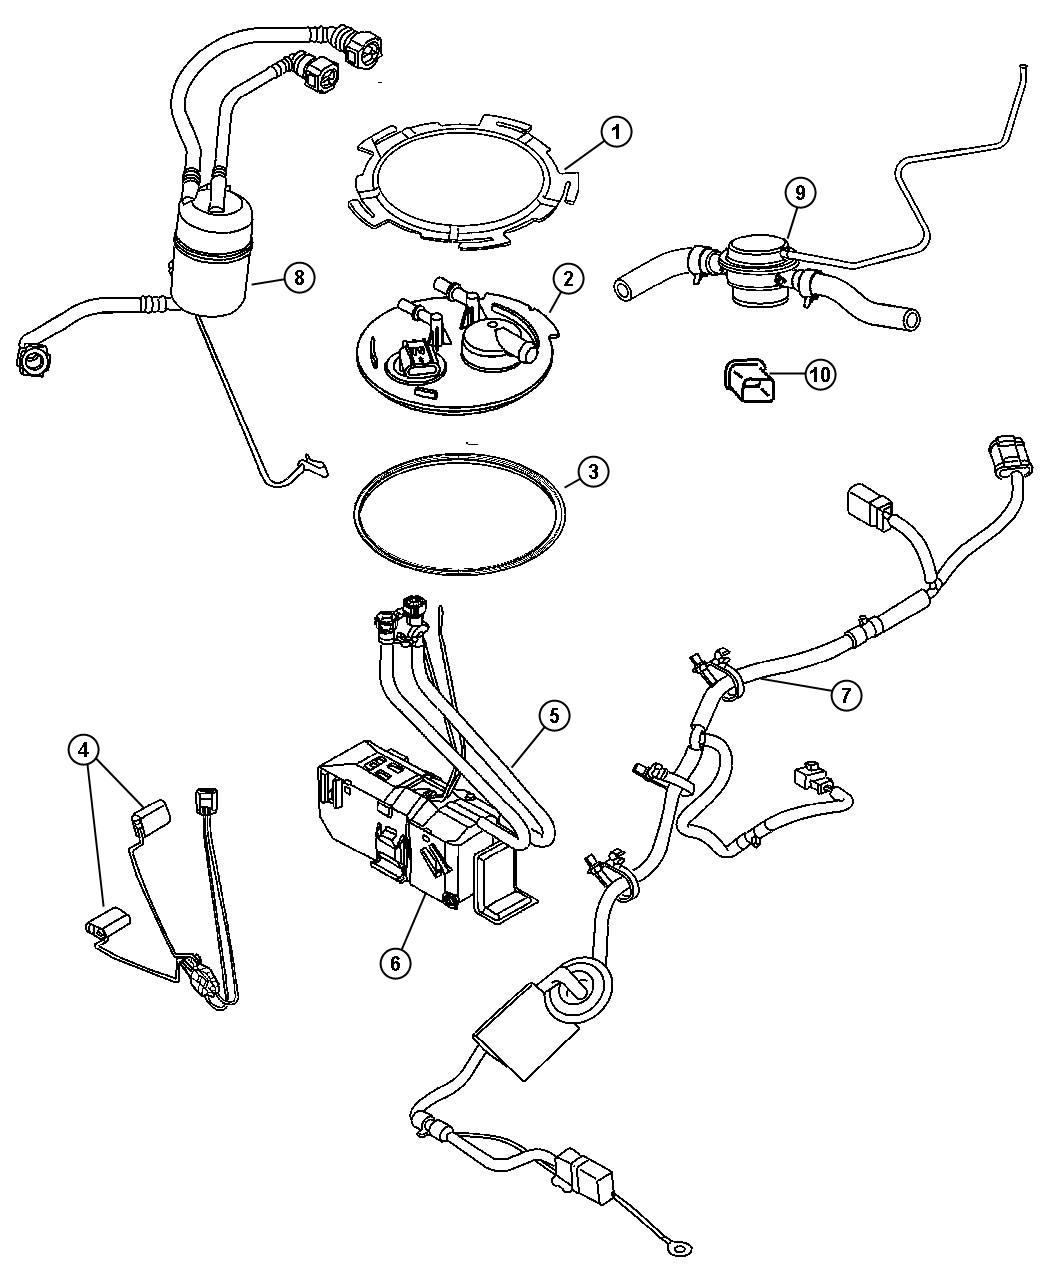 Jeep Wrangler Seal Used For Fuel Pump And Level Unit